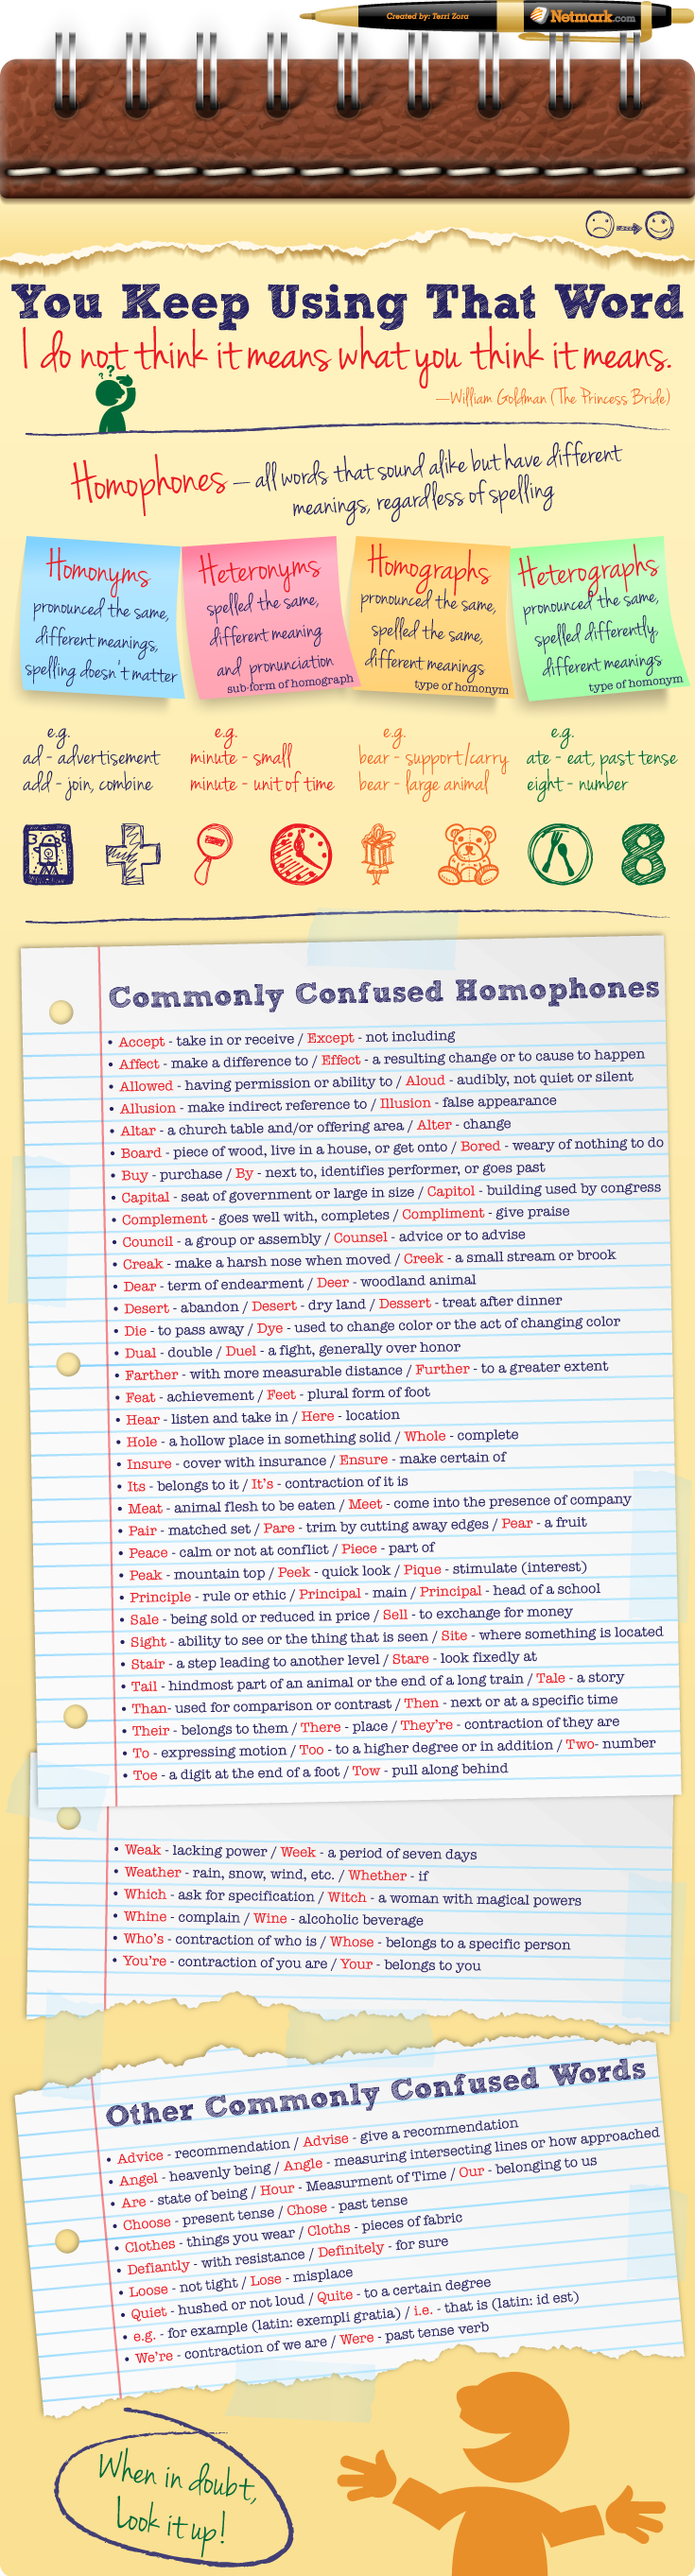 Commonly Confused Words And Homophones Infographic From Netmark